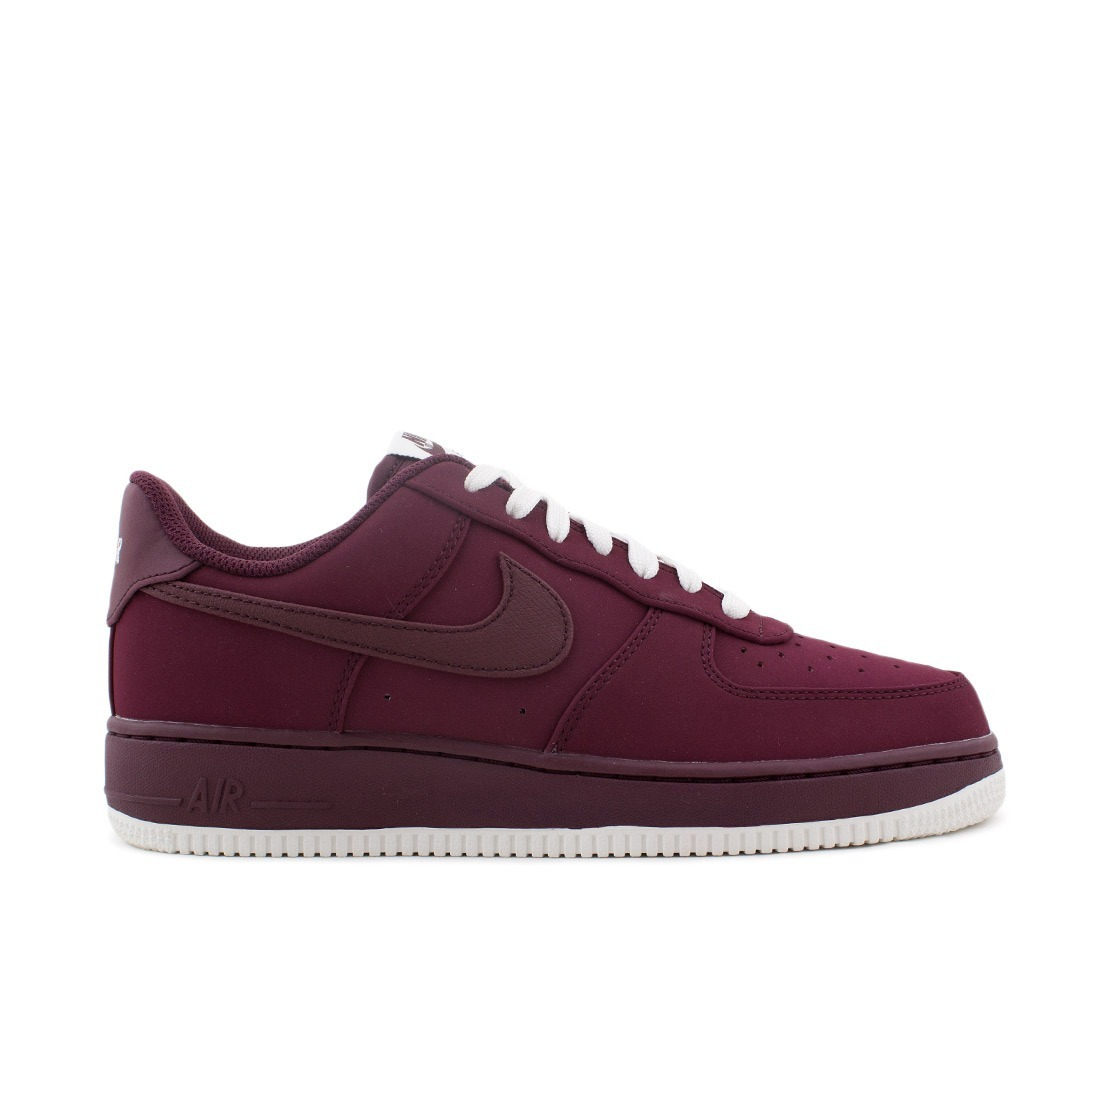 3ff90324a3b0c One Air Mujer Zapatillas Especial Nike Hombre 82 Force Low rqXXHgtwnx